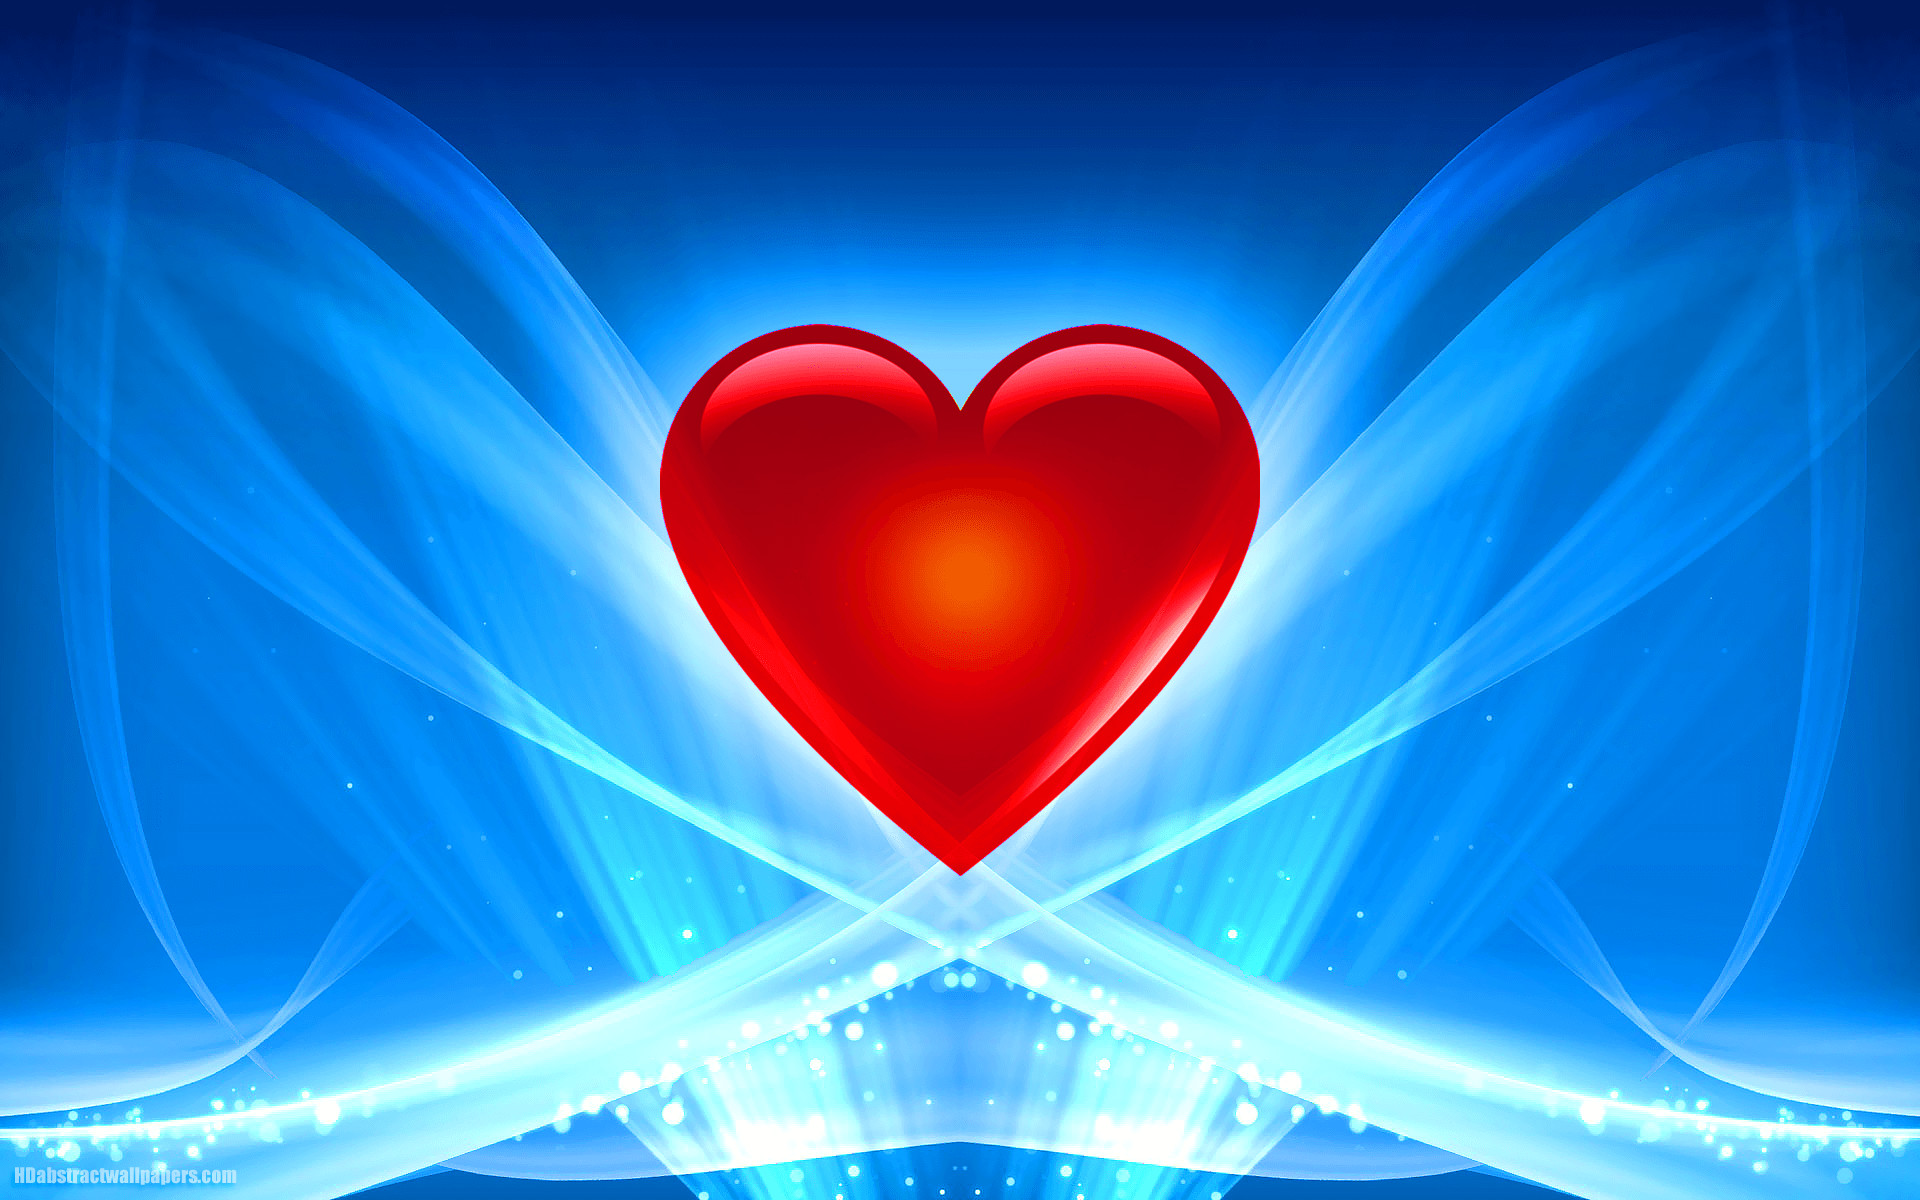 Blue hearts background wallpaper 66 images - Heart to heart wallpaper ...